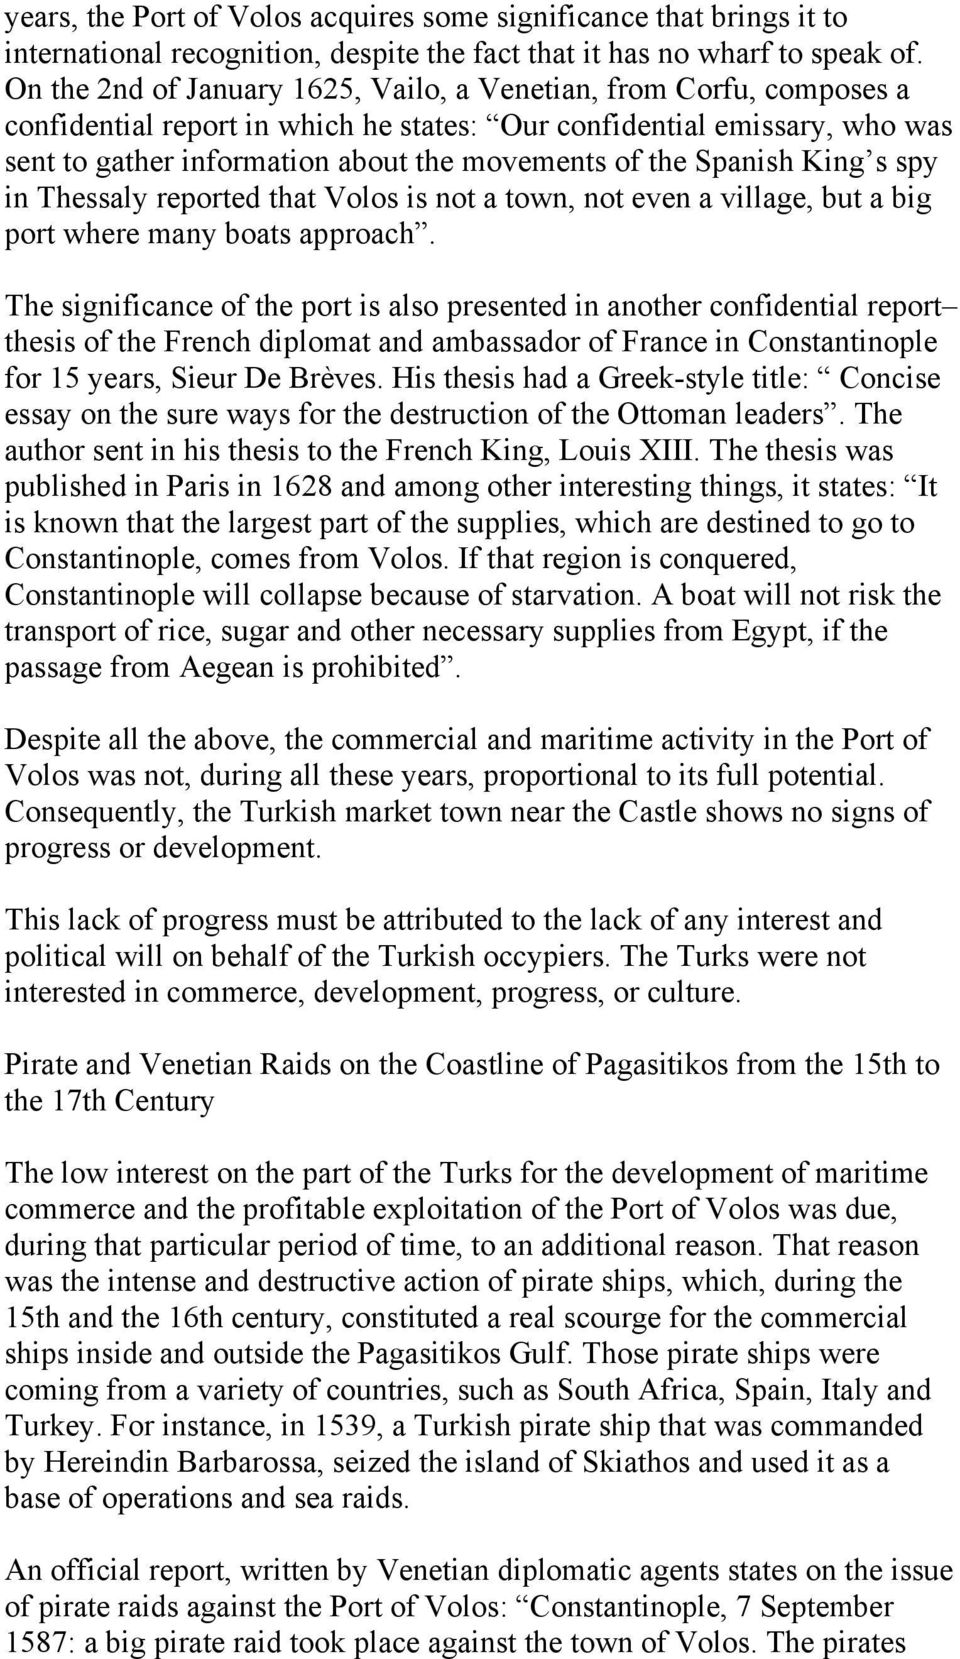 Spanish King s spy in Thessaly reported that Volos is not a town, not even a village, but a big port where many boats approach.